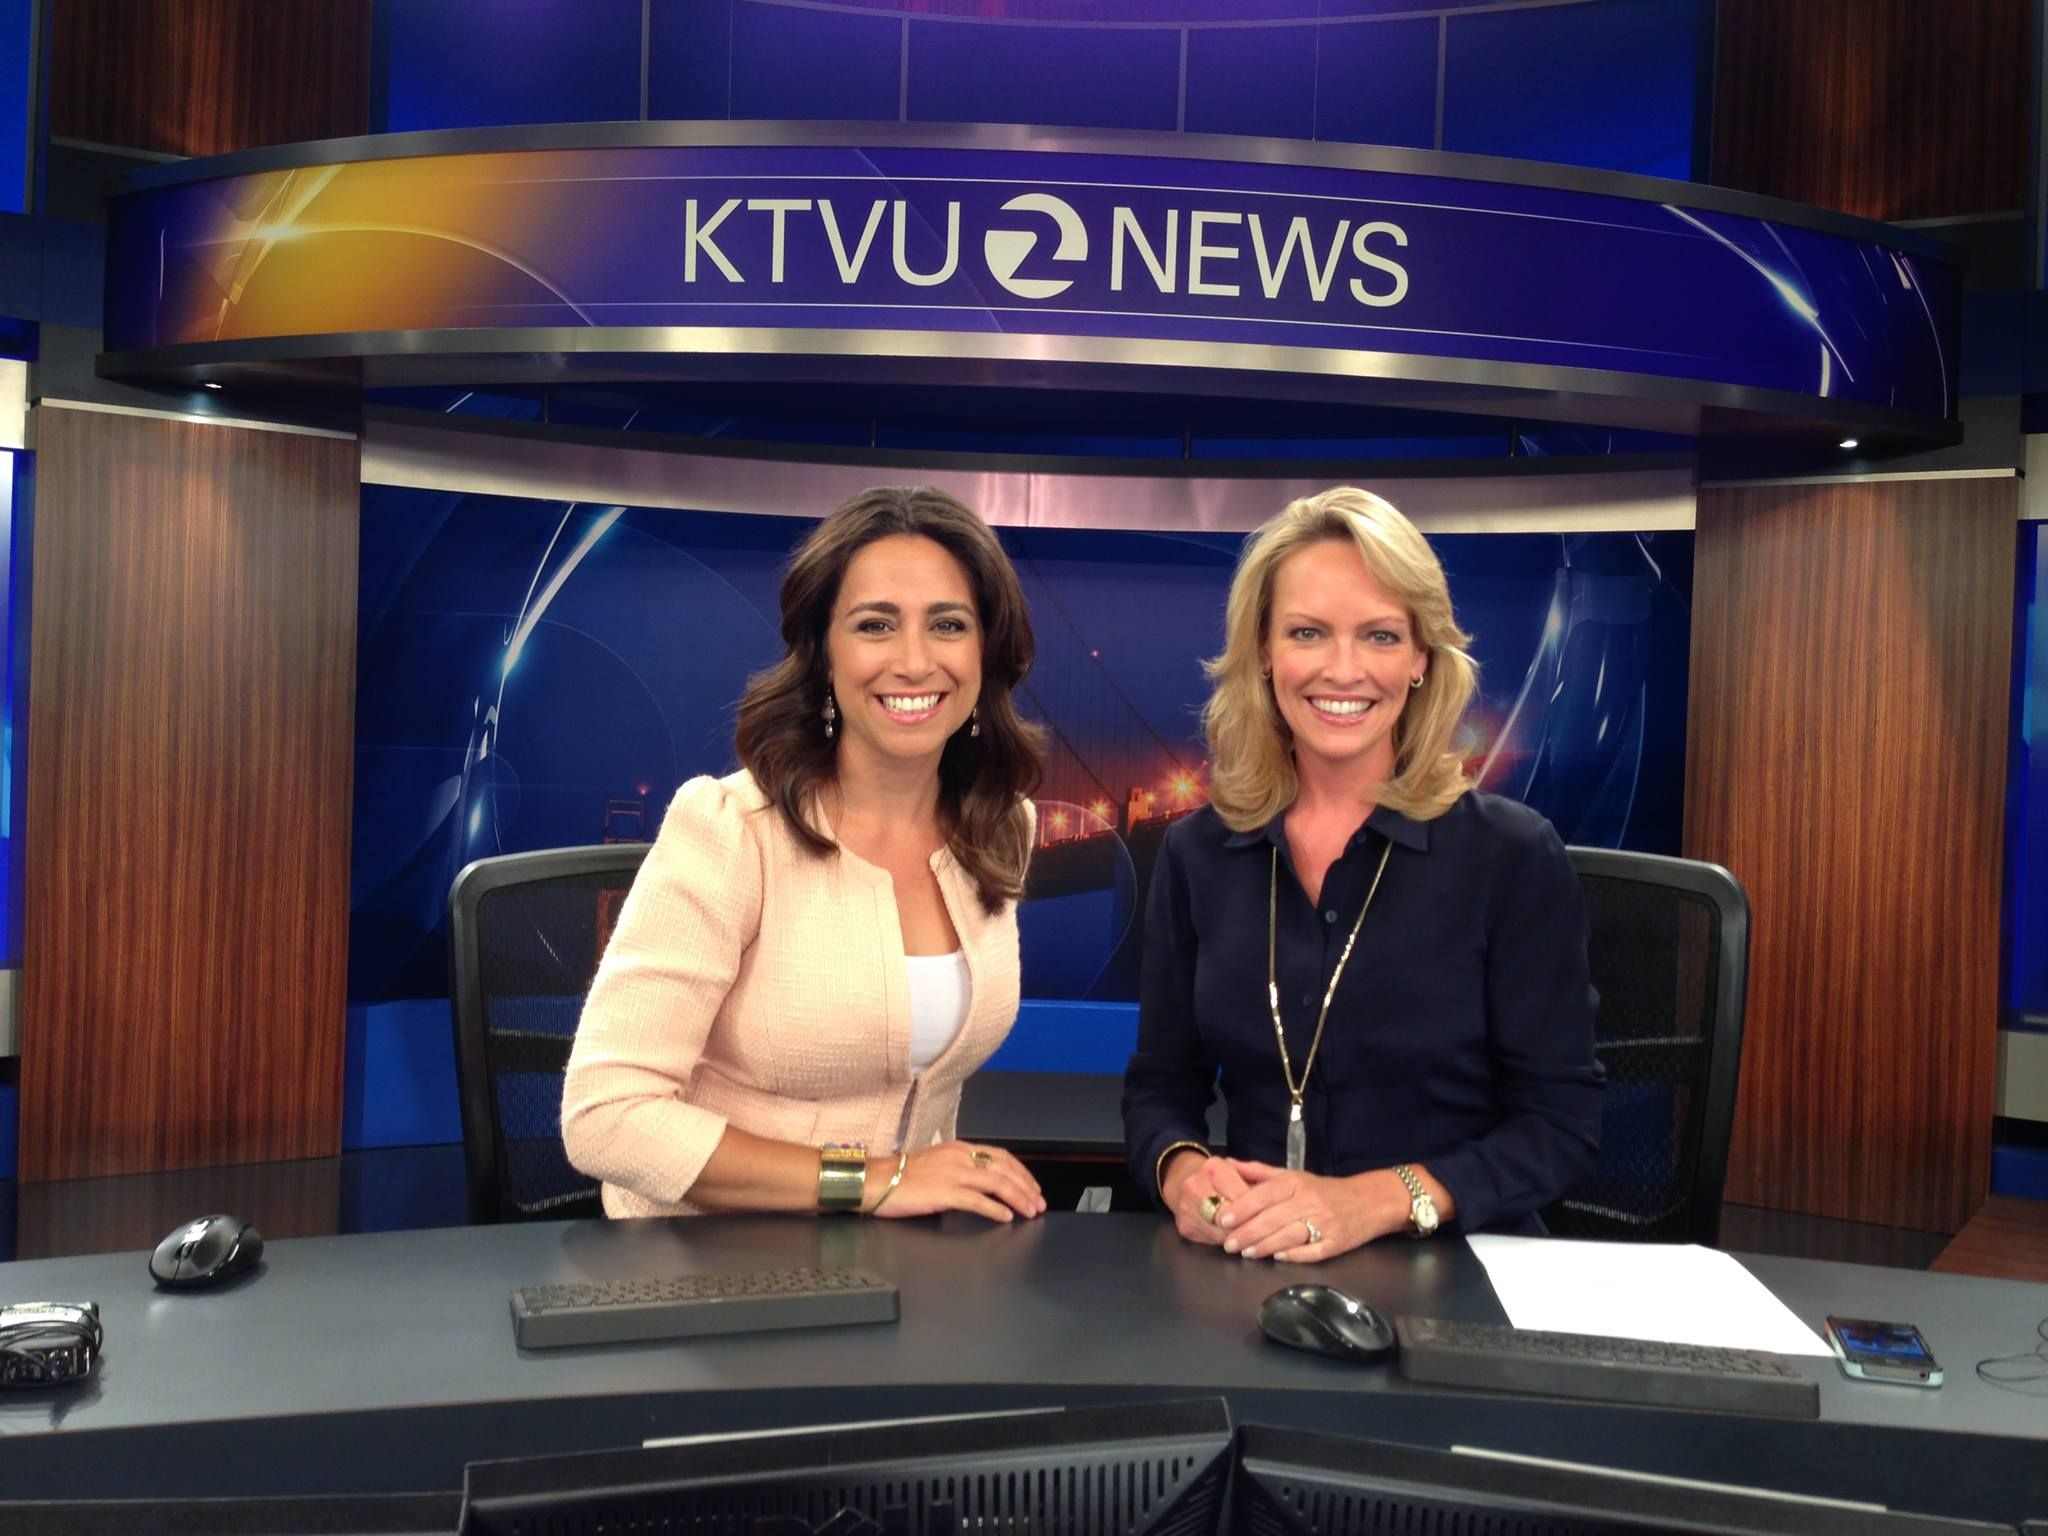 Gasia Mikaelian And Julie Haener Are All Smiles At The Anchor Desk Ktvu Tv Channel Oakland San Francisco All Smiles